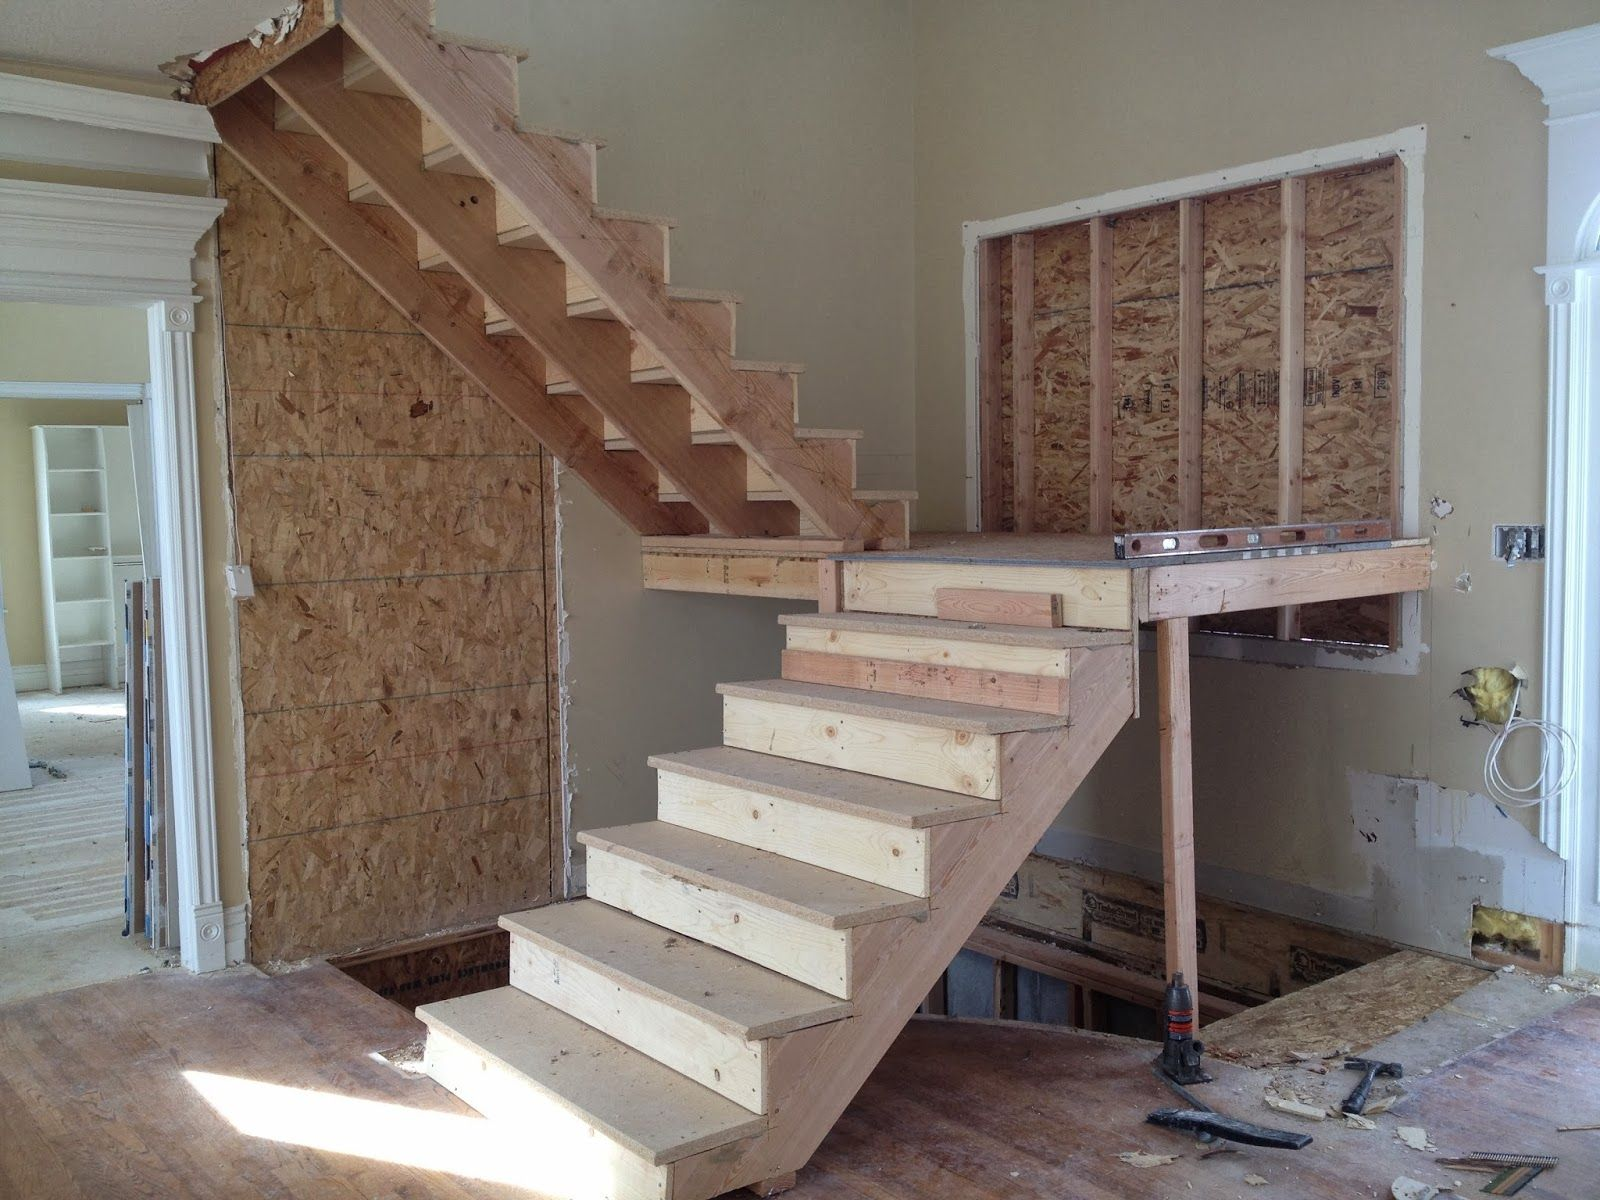 U Shaped Stairs Half Bath Under U Shaped Stairs Photos - Google Search